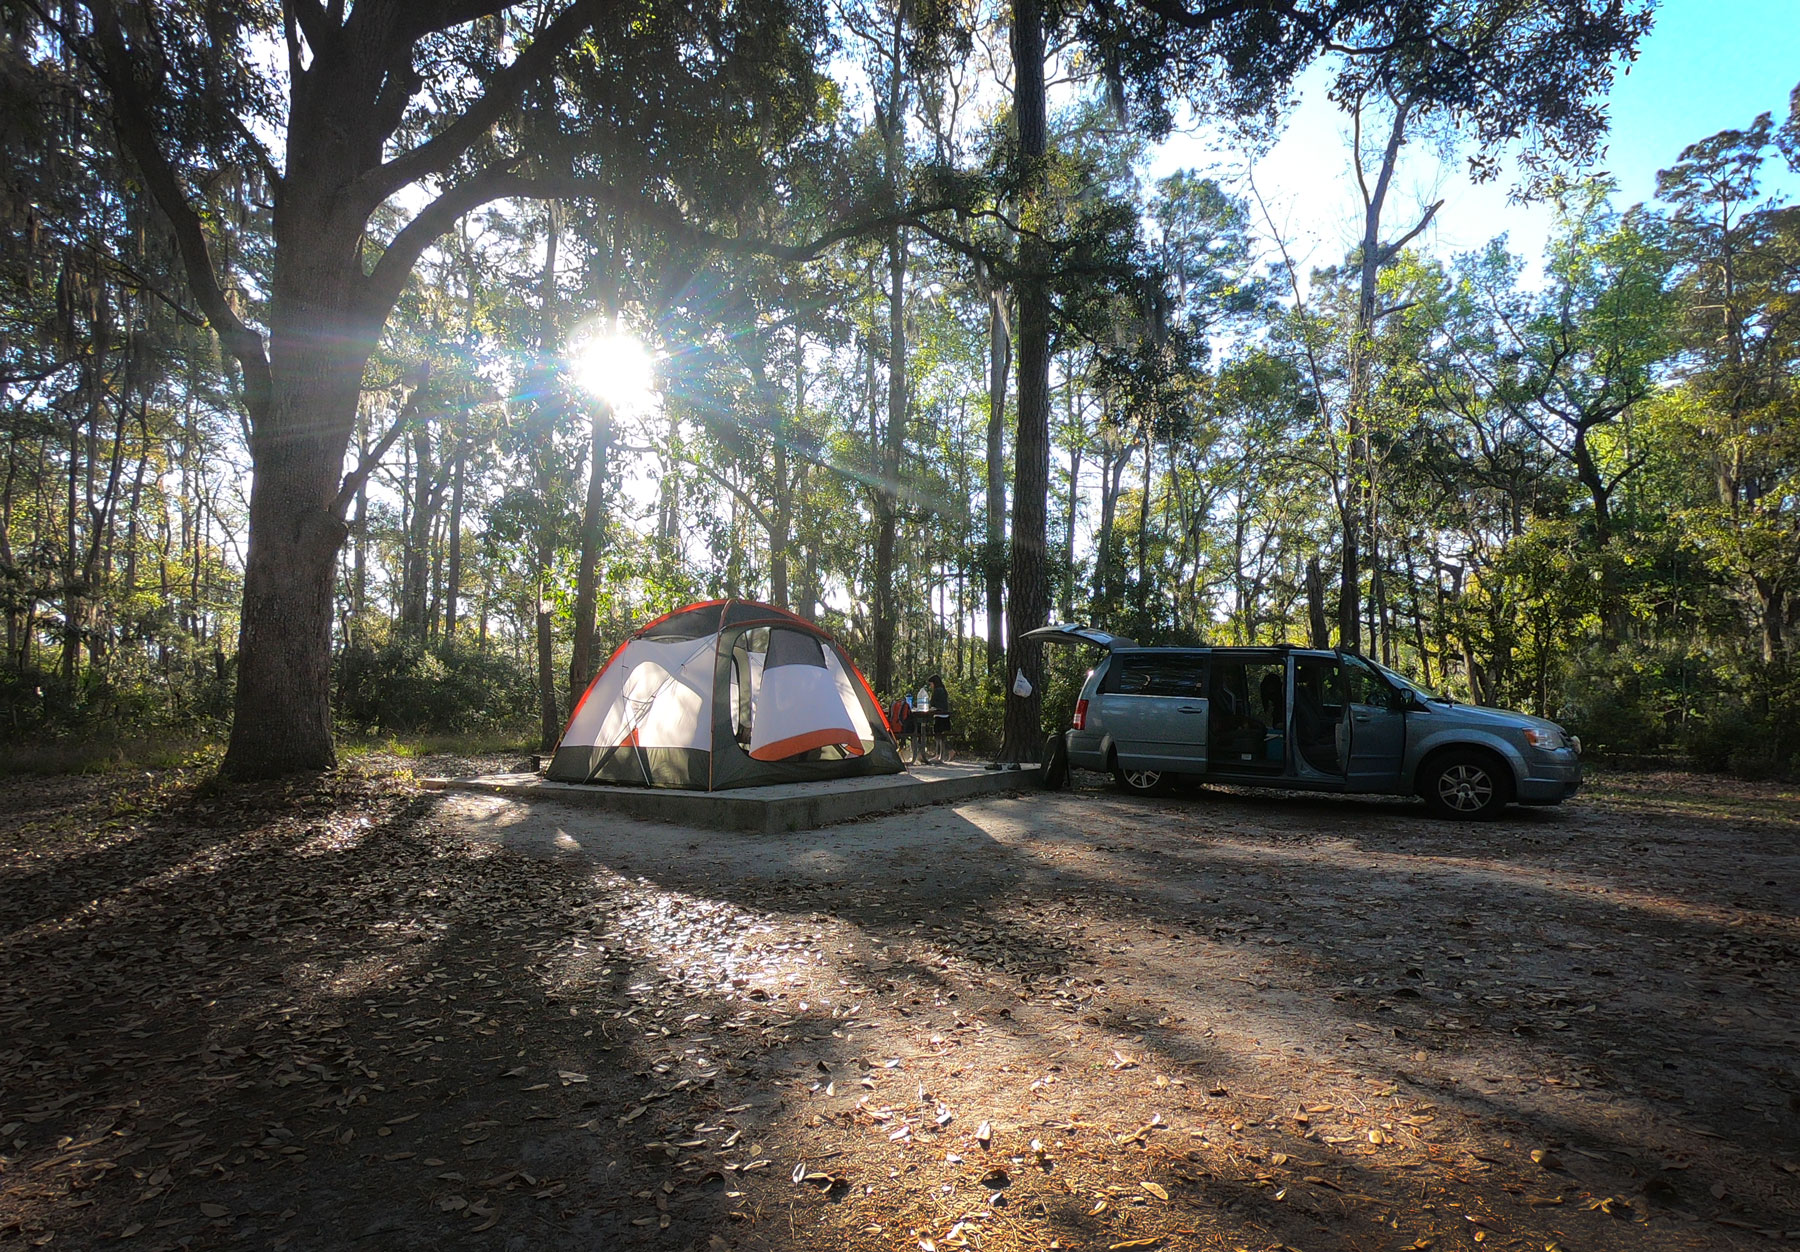 Setting up spacious campsite with tent and van at Skidaway Island State Park, Georgia